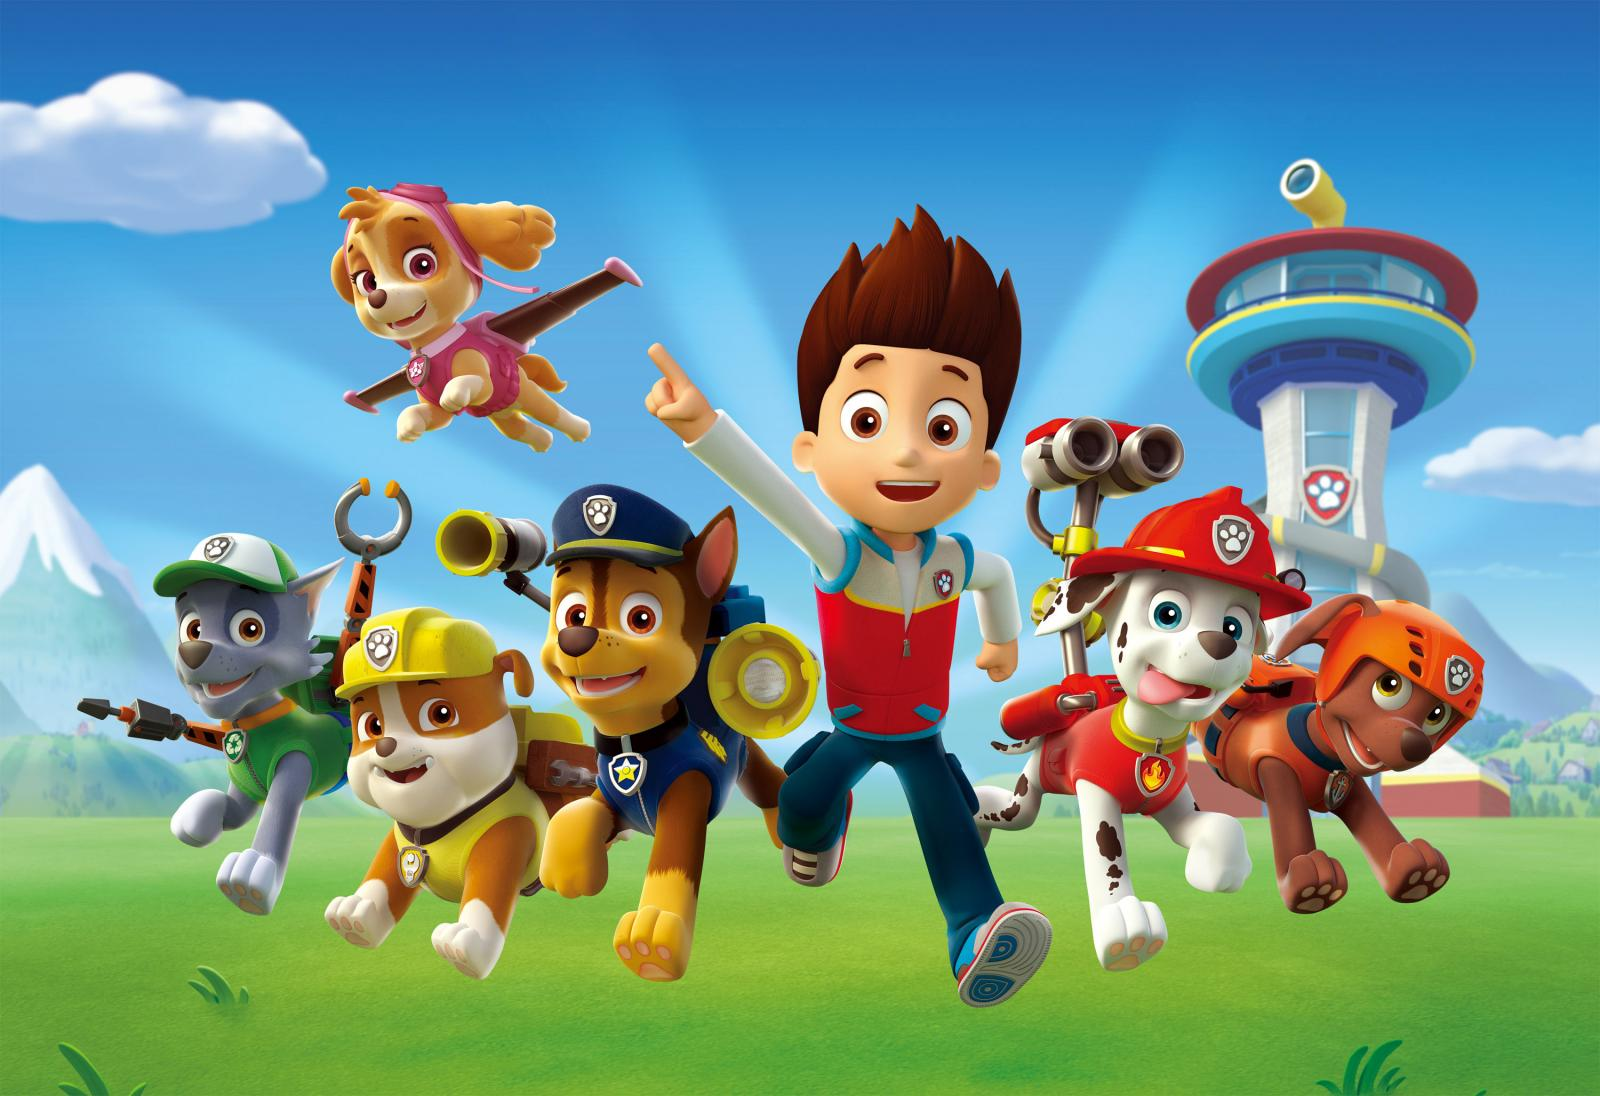 17 things I don't understand about Paw Patrol - Cardiff Mummy SaysCardiff Mummy Says